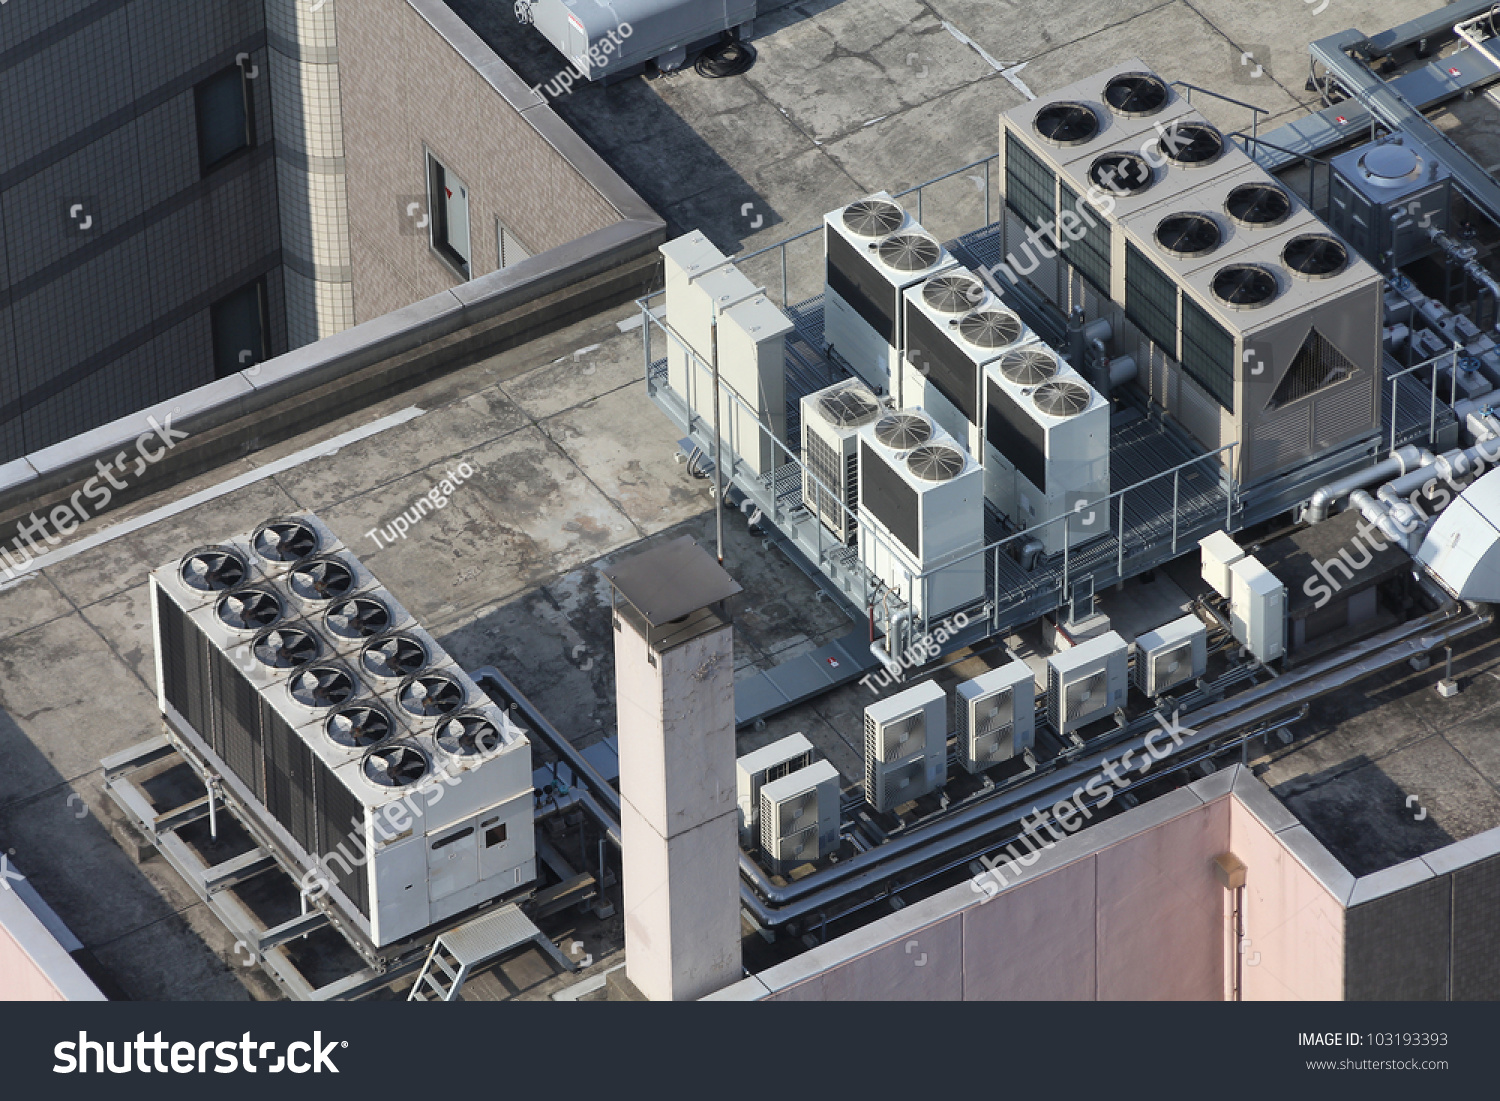 Exhaust Vents Industrial Air Conditioning Ventilation